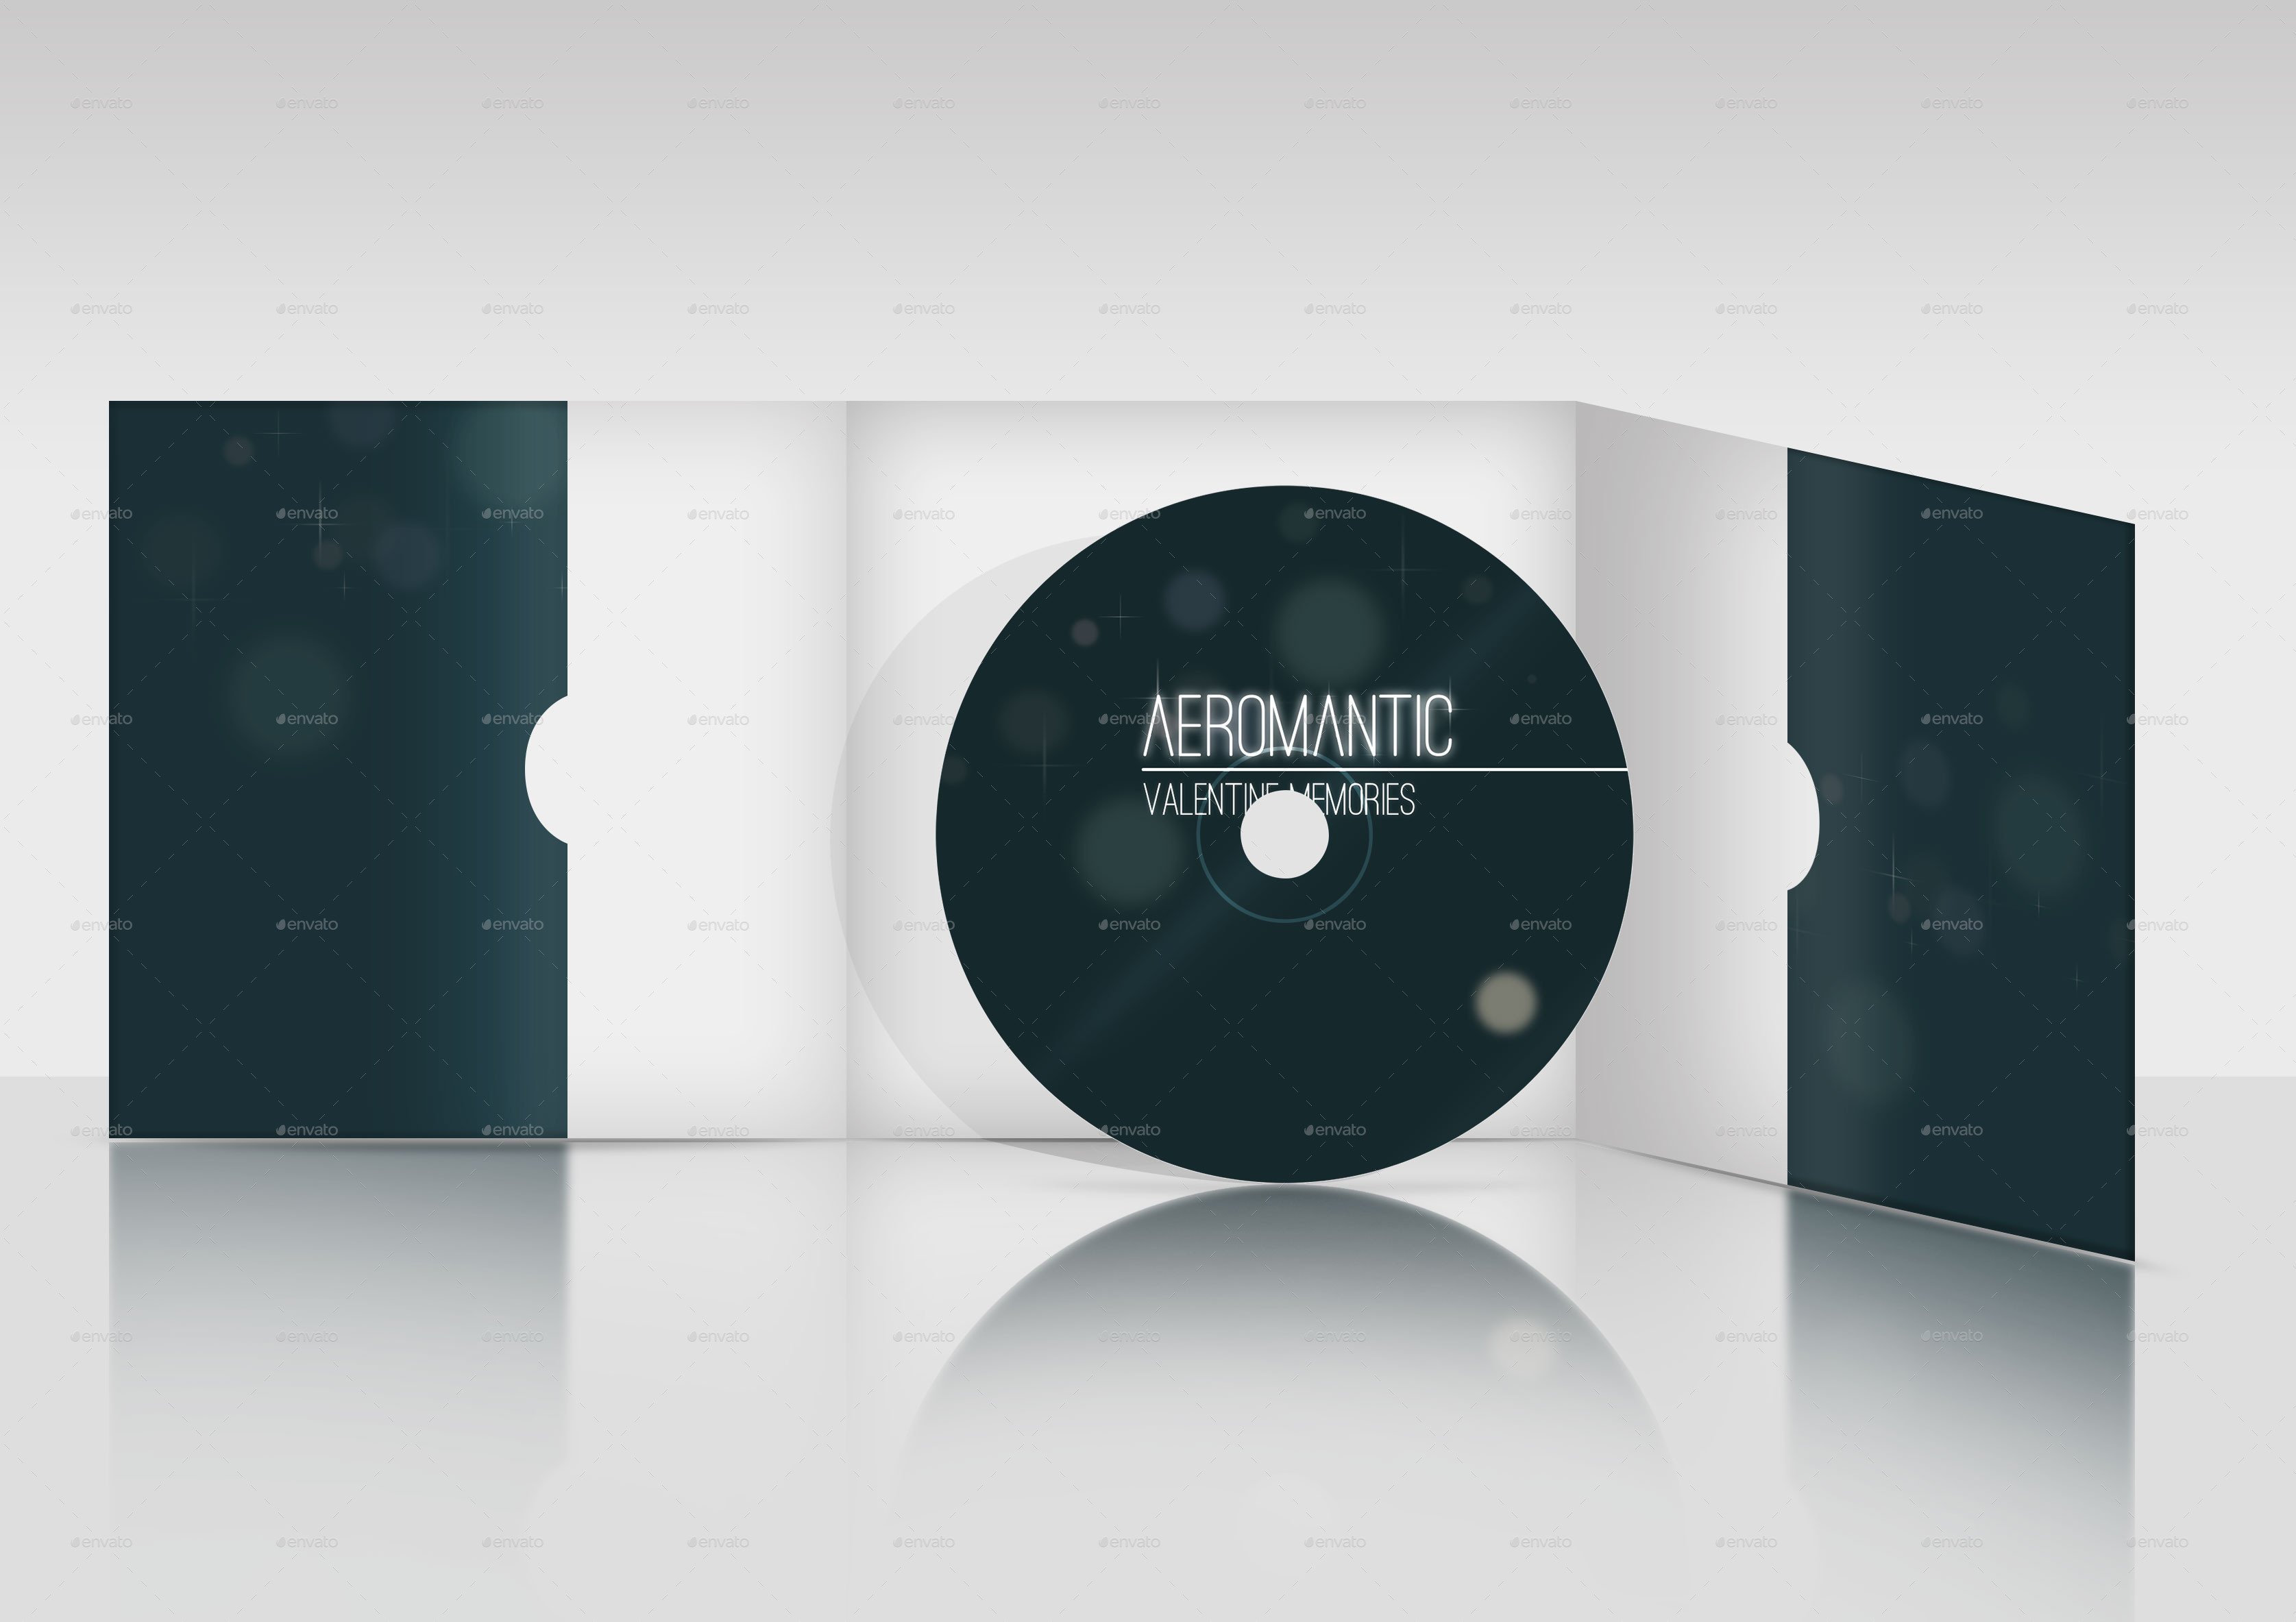 cd    dvd cover and case mockup by mousekeyboard